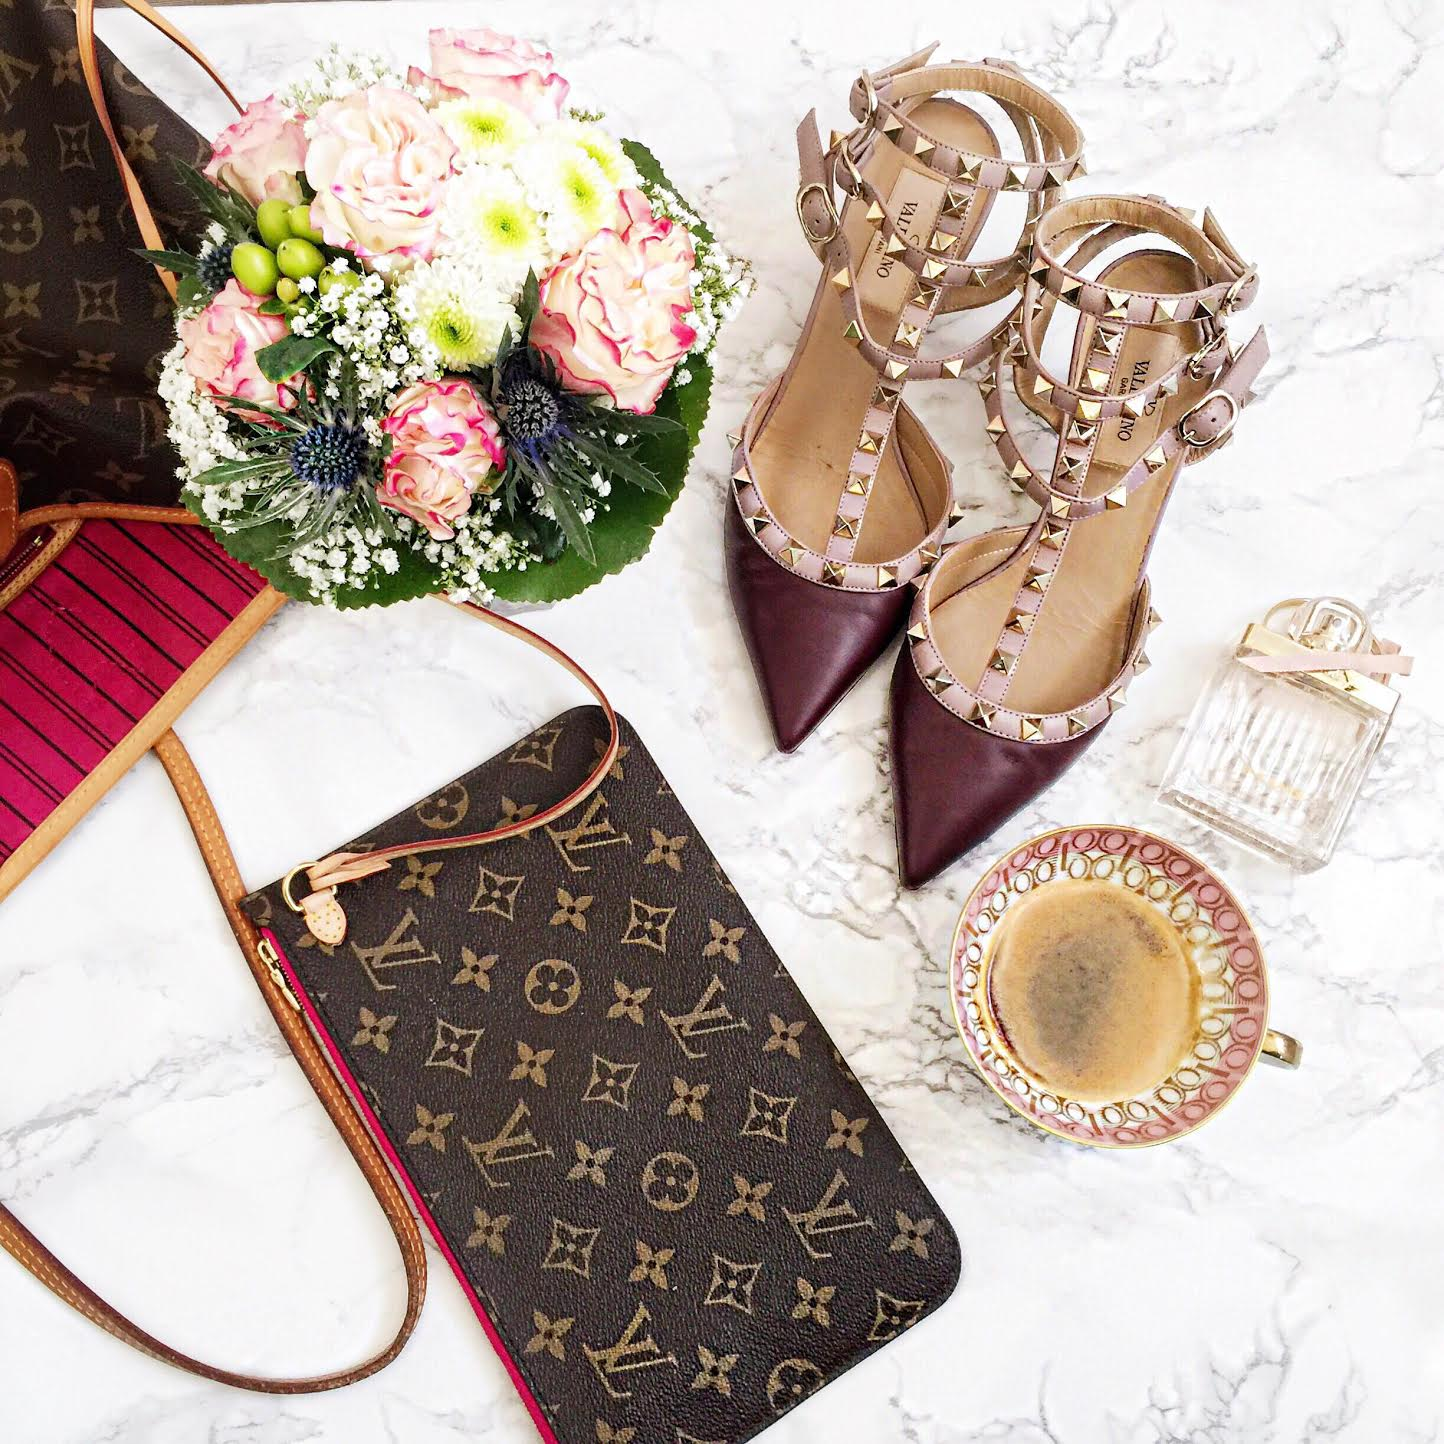 louis-vuitton-neverfull-details-coffee-table-flowers